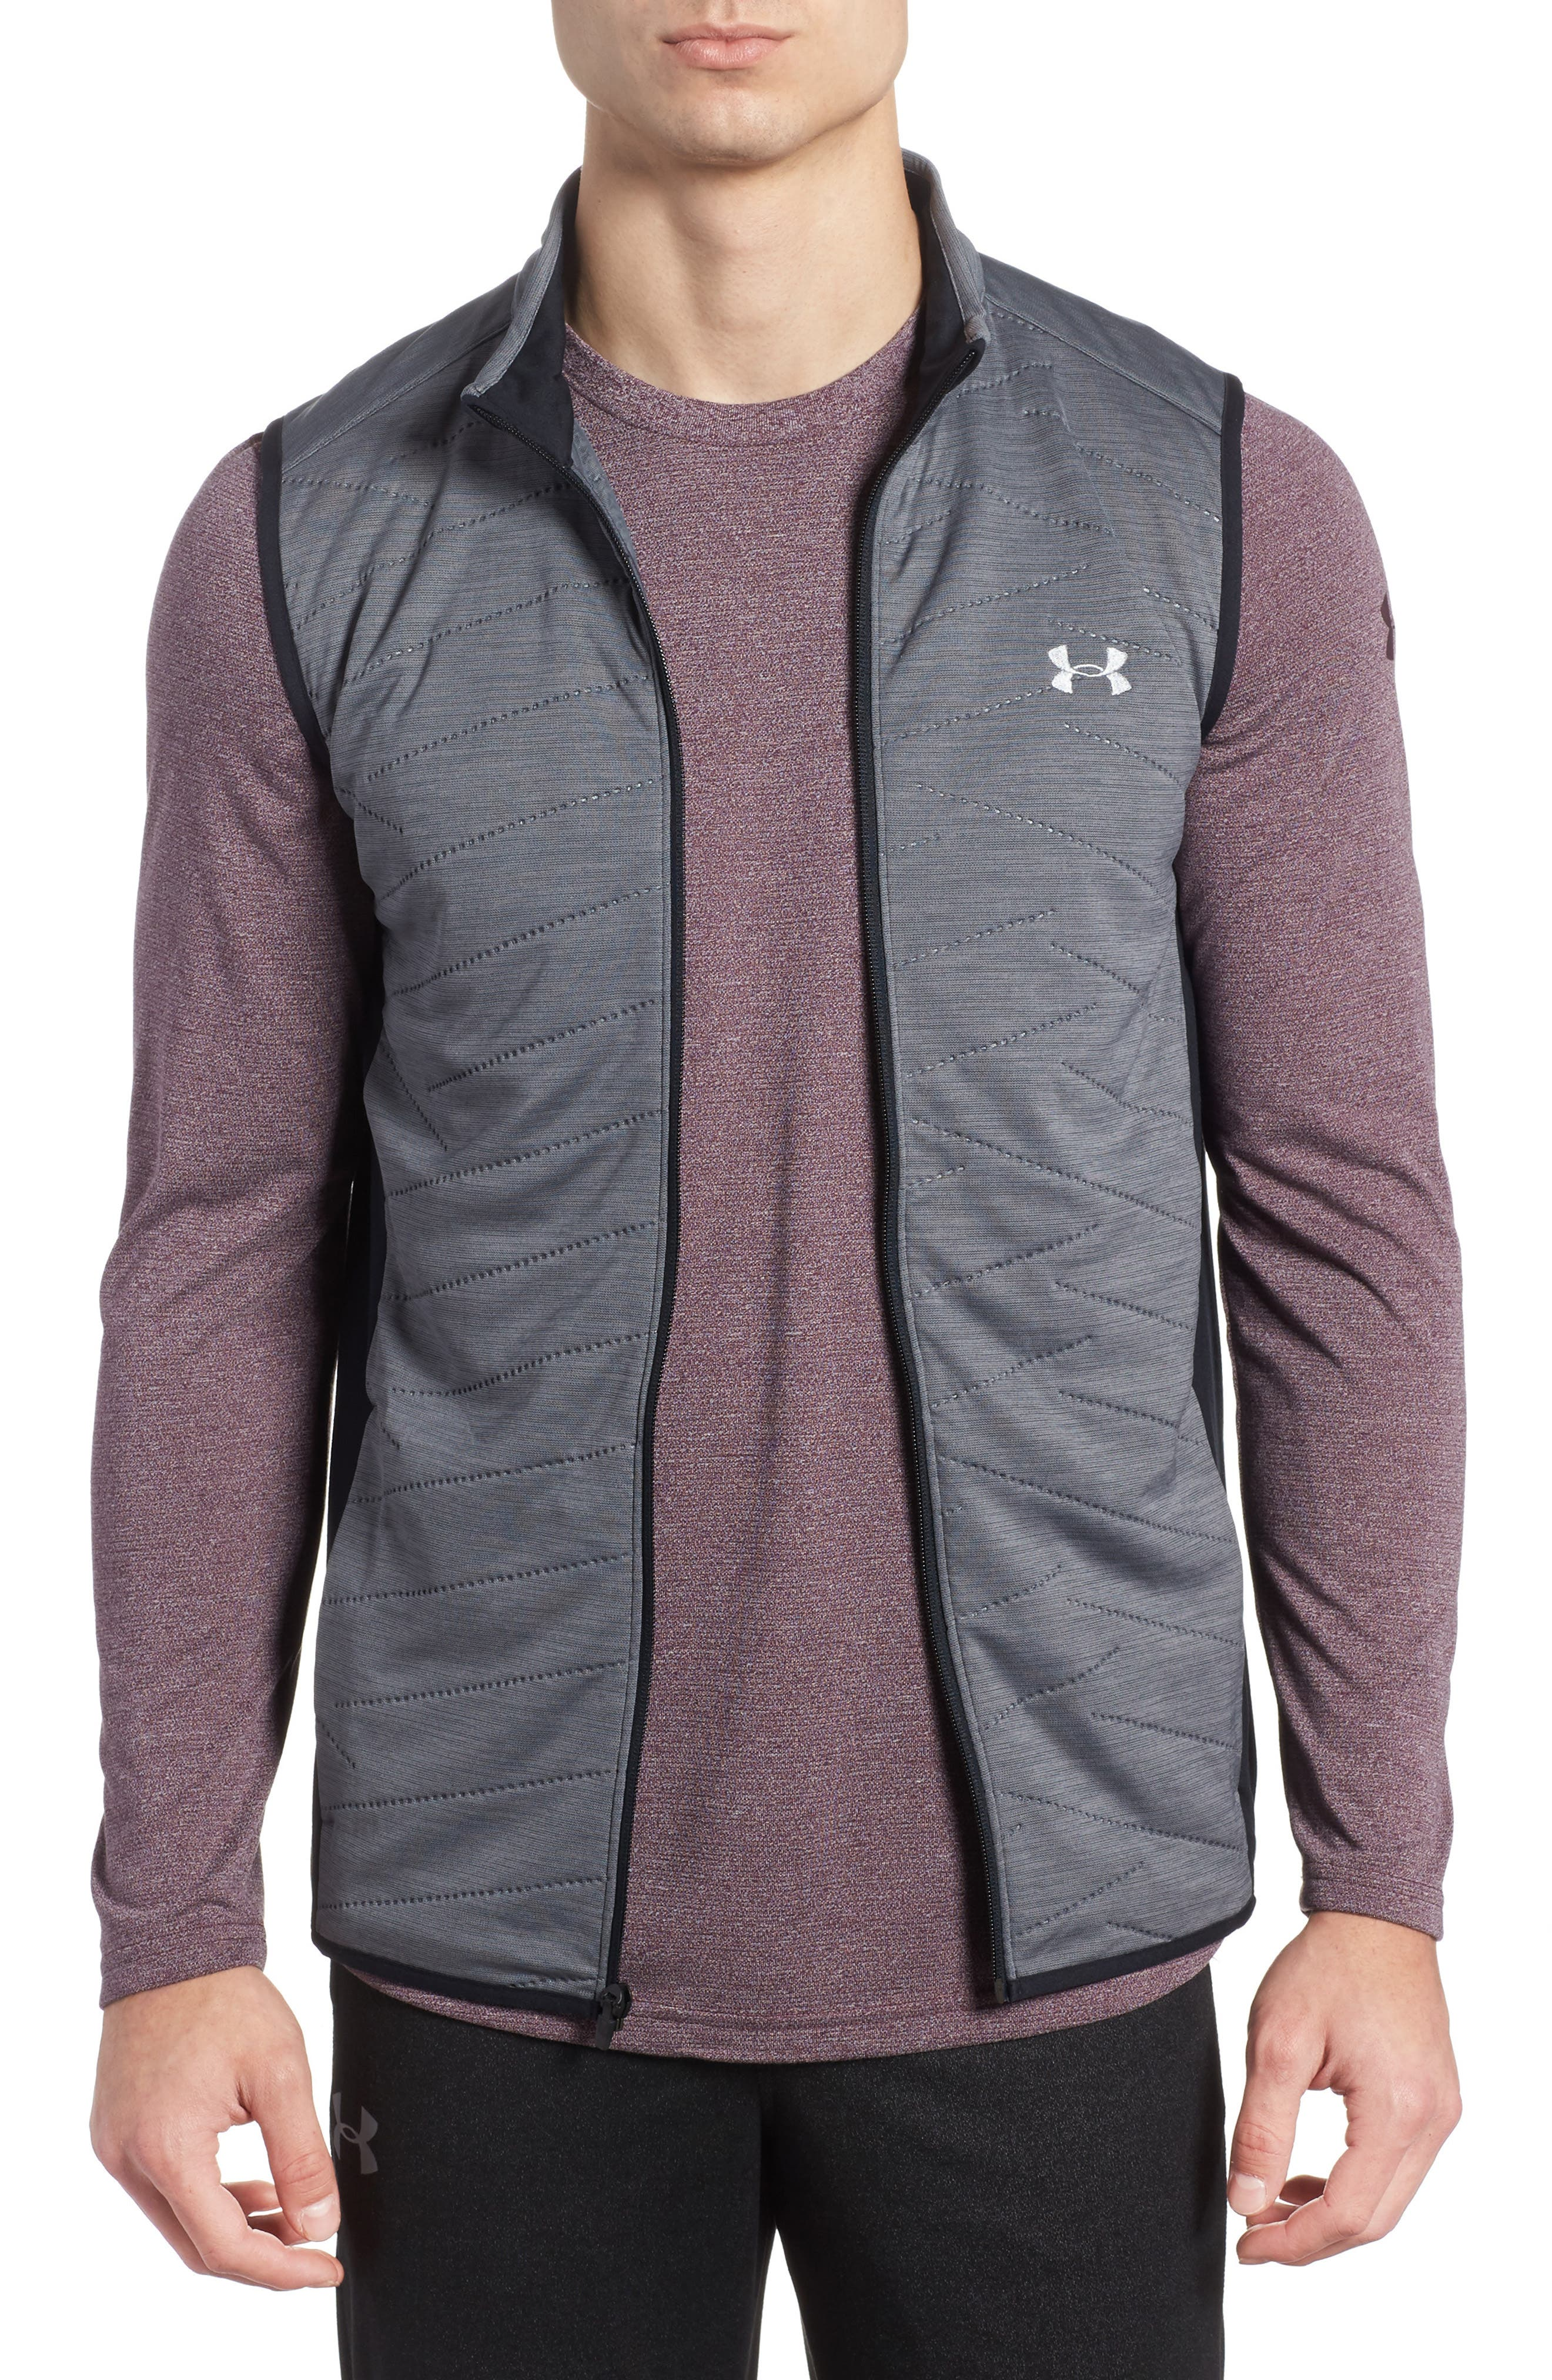 Alternate Image 1 Selected - Under Armour Reactor Hybrid Zip Vest